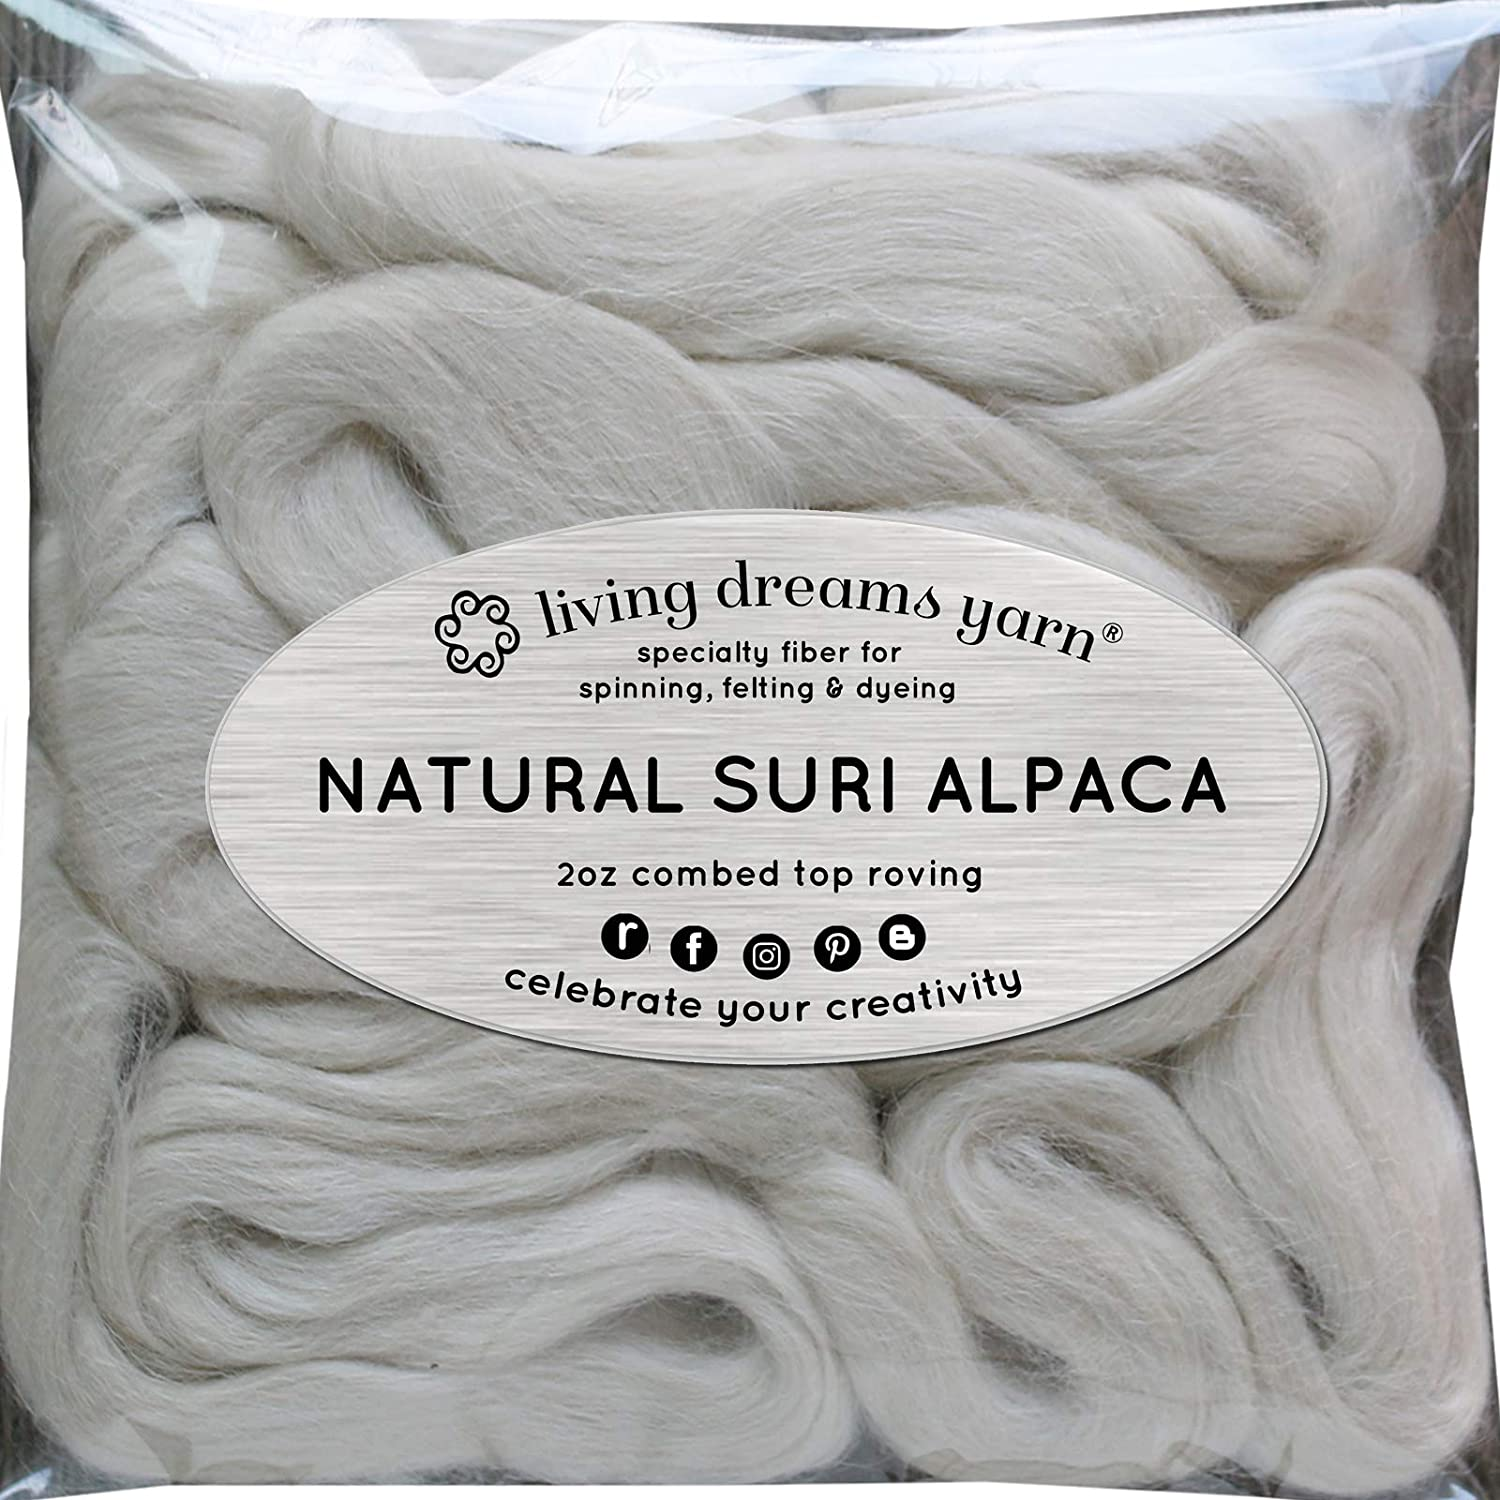 Suri Alpaca Fiber for Spinning Blending Felting Dyeing and Doll Making. Natural White Combed Top. Living Dreams Yarn GBFibSSuriAlpacaNat